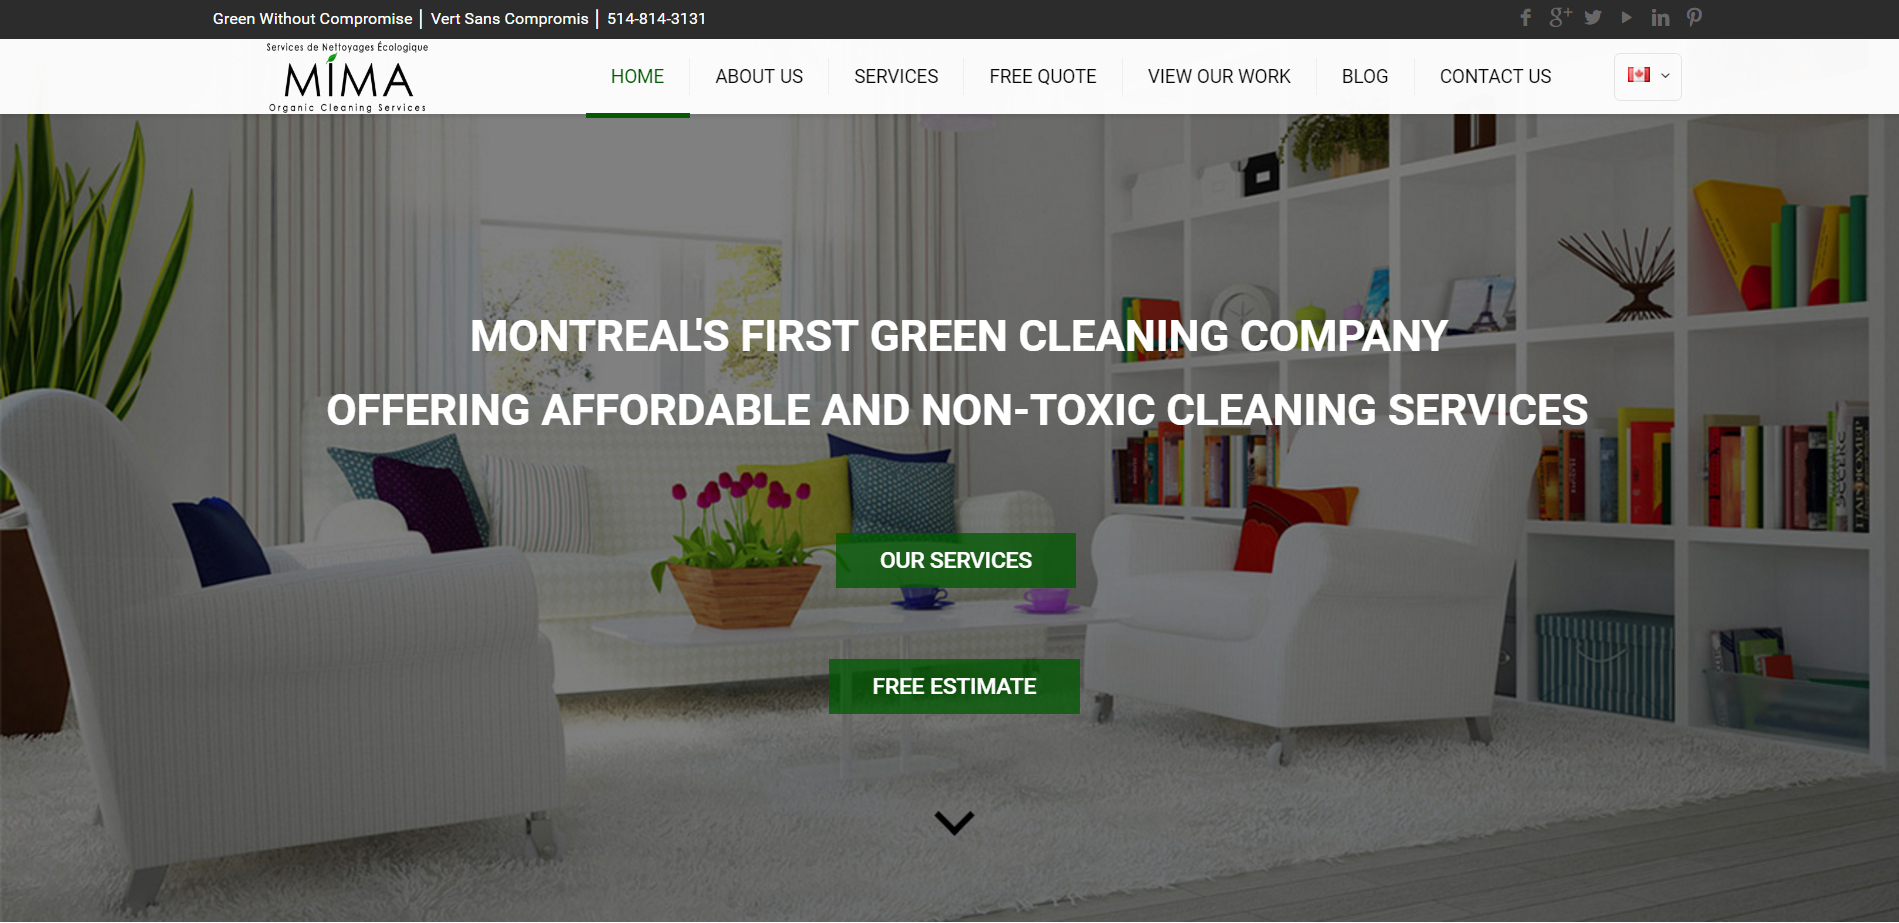 Welcome to MiMa Organic Cleaning Services Non Toxic Carpet Cleaning